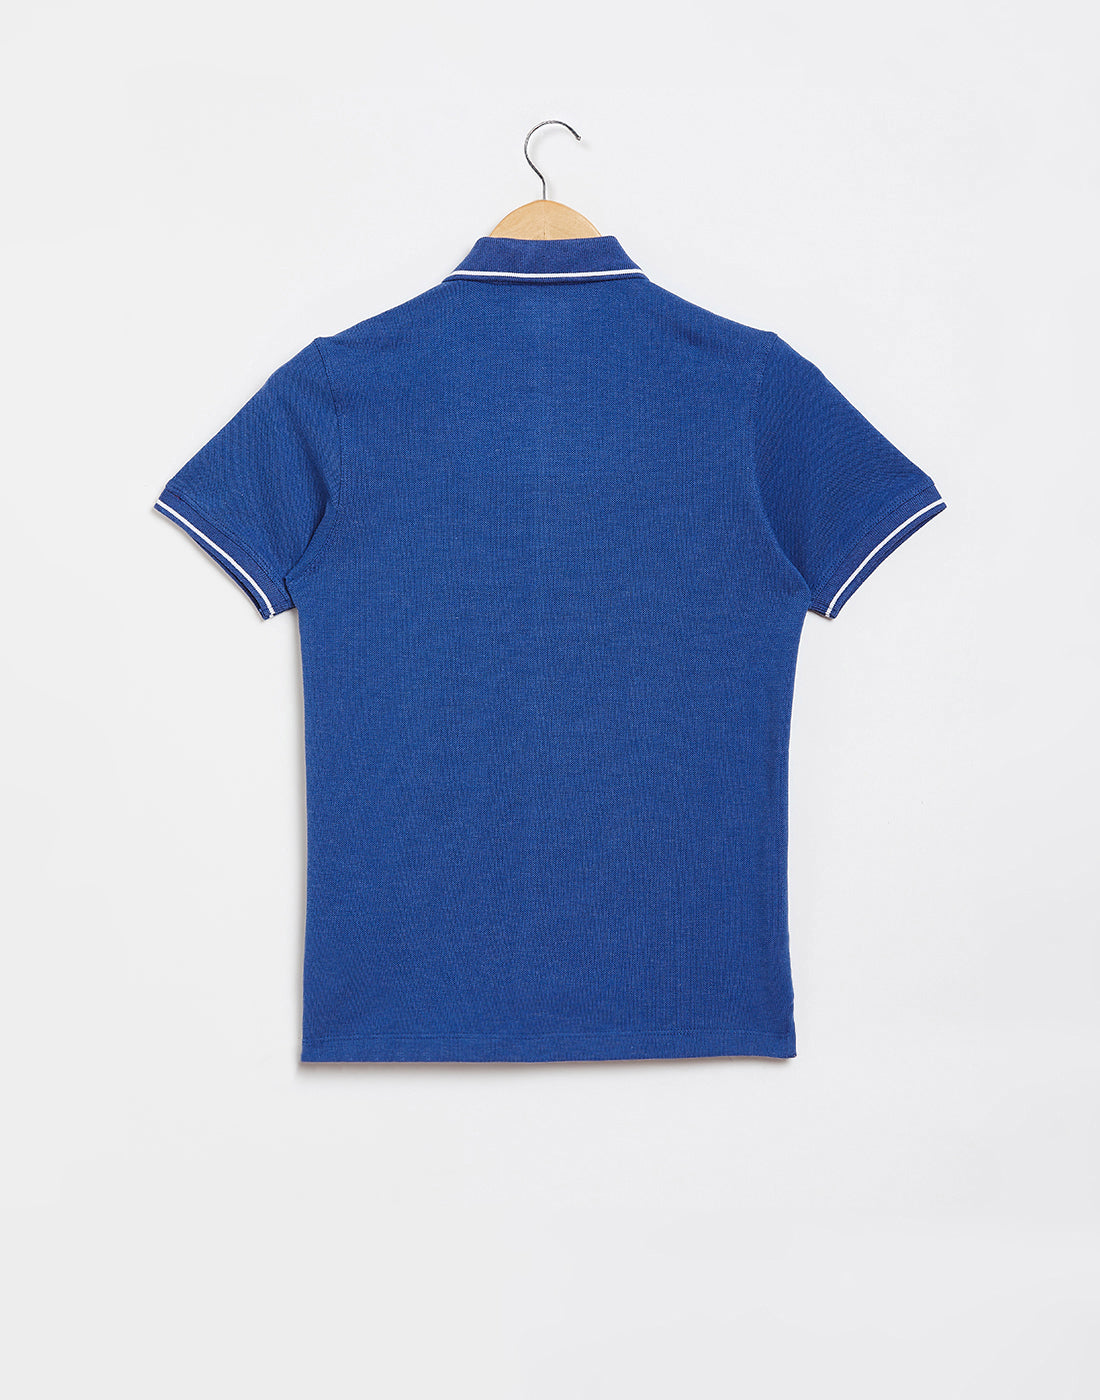 Octave Boys Royal Blue Polo Tshirt